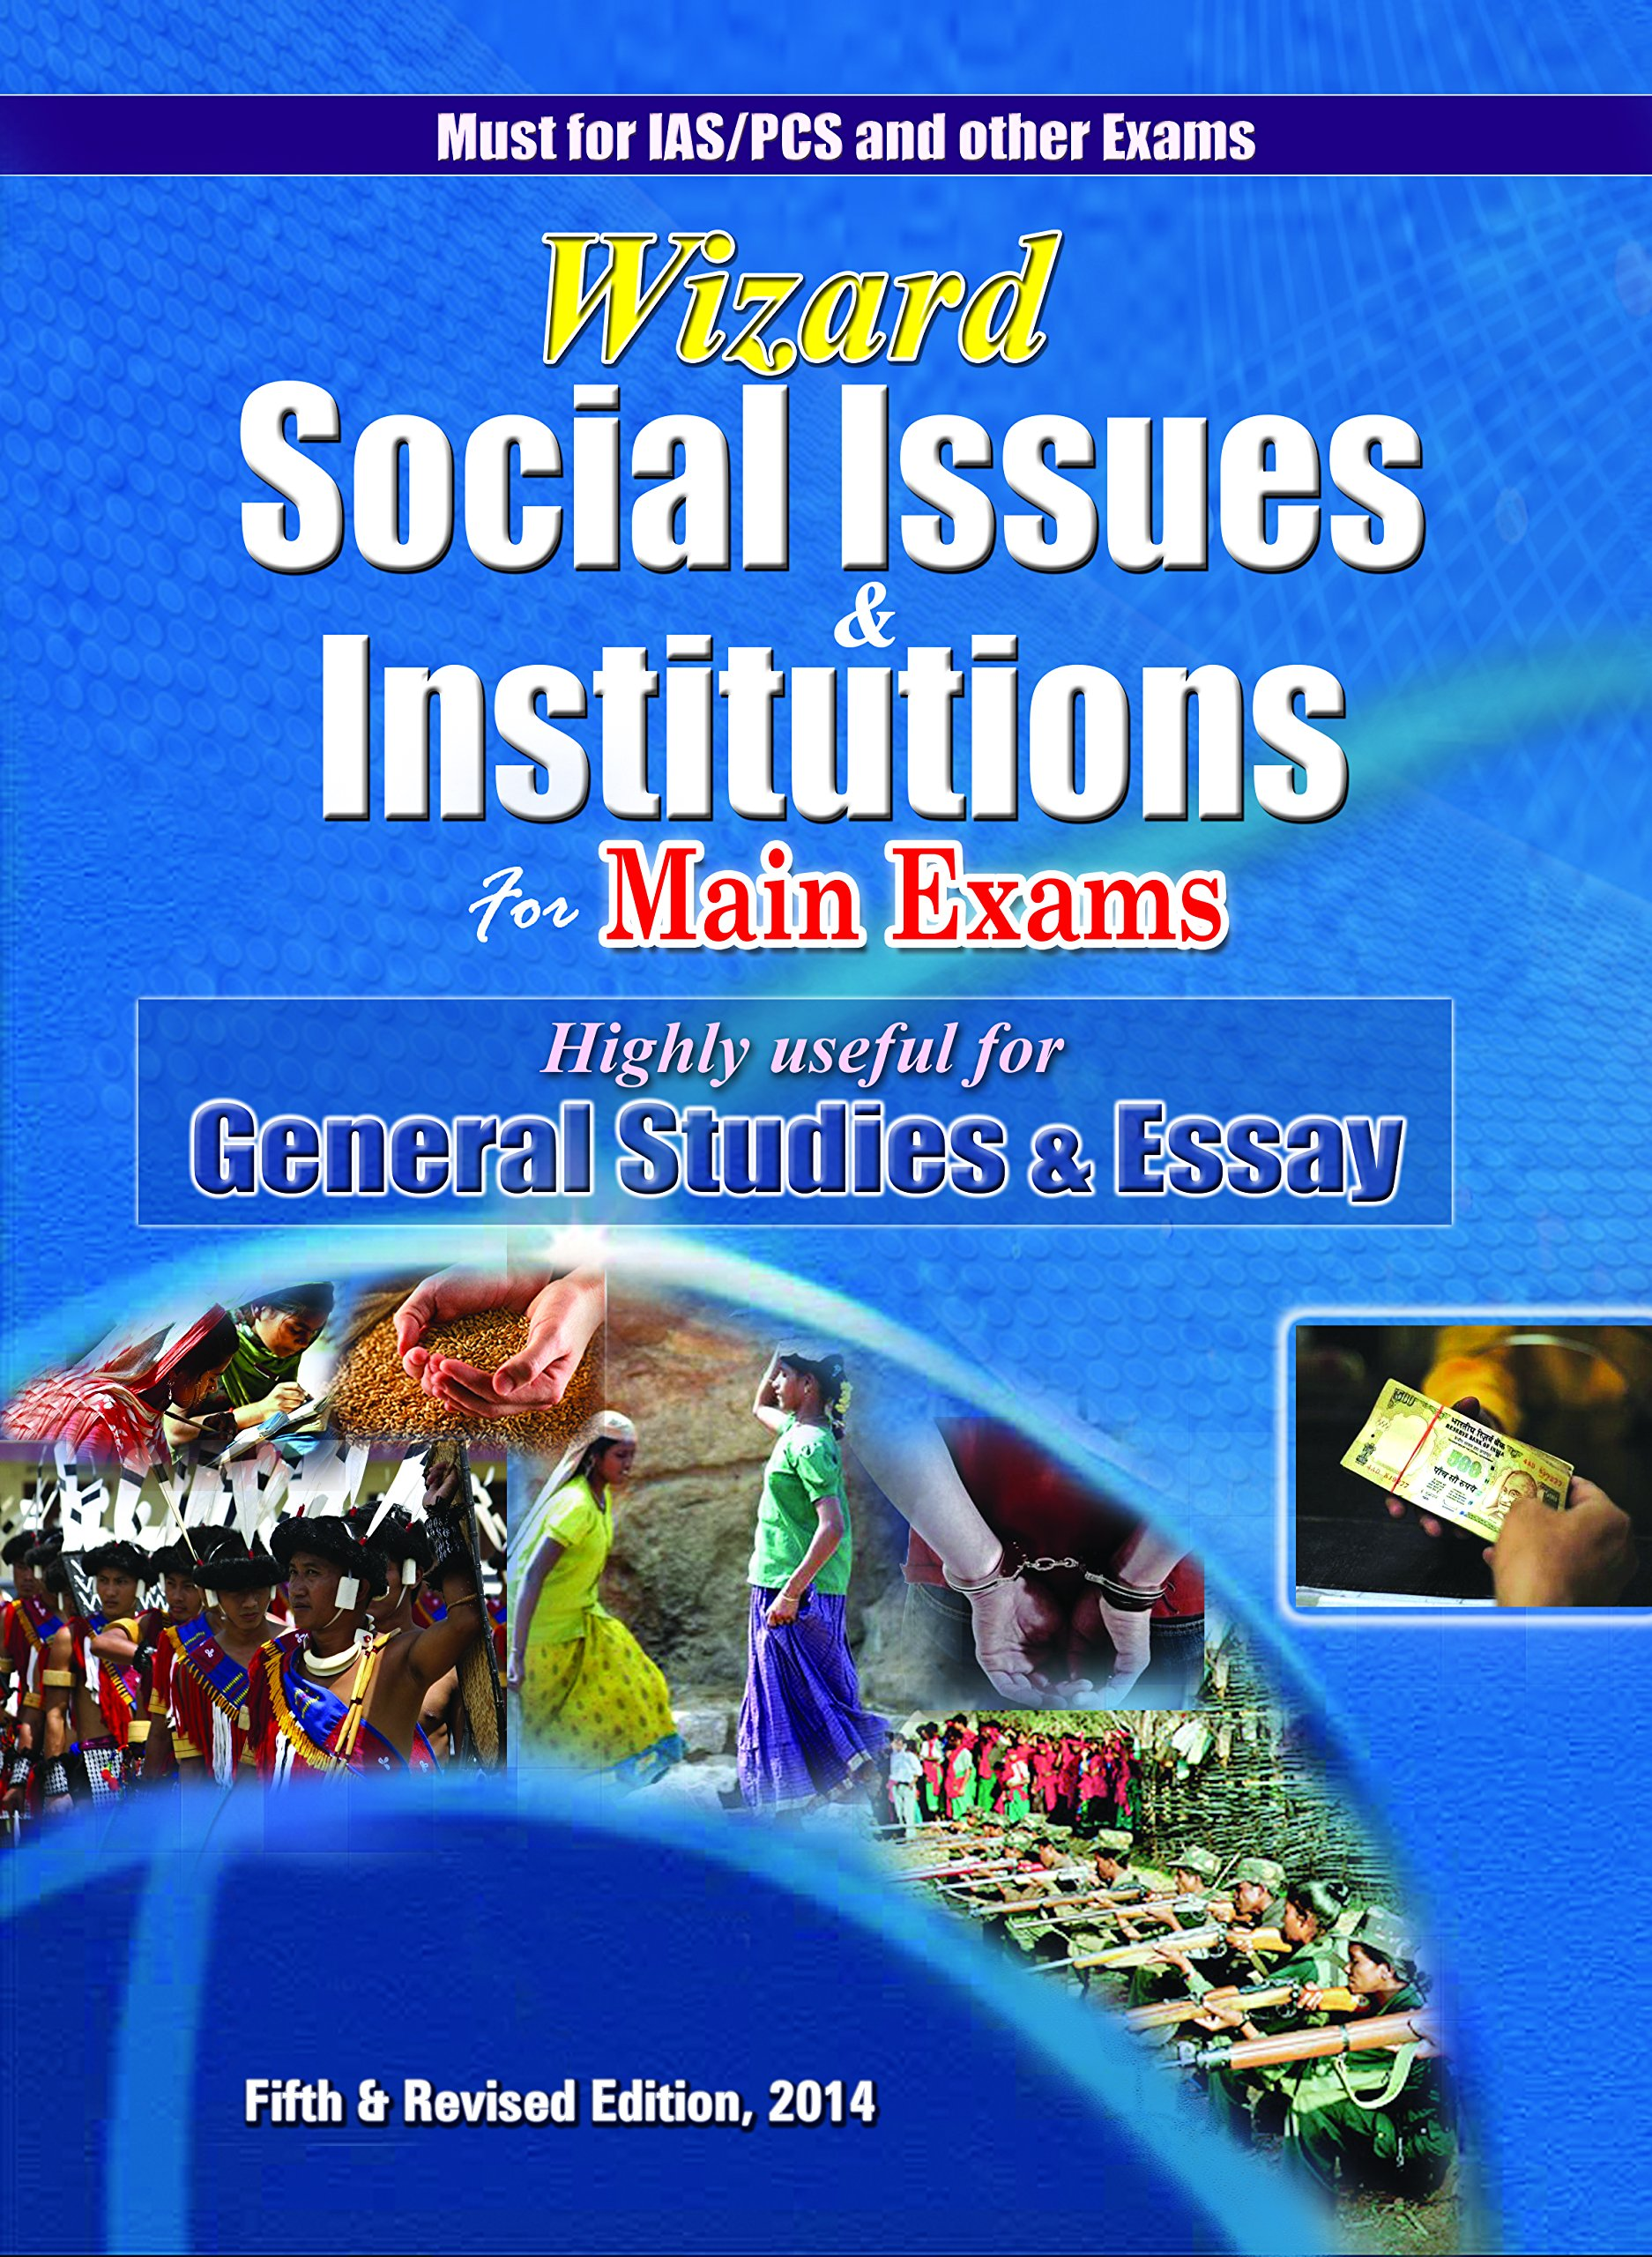 essay wizard graphic design competition for students display  buy wizard social issues institutions fifth edition book buy wizard social issues institutions fifth edition book essay online sample